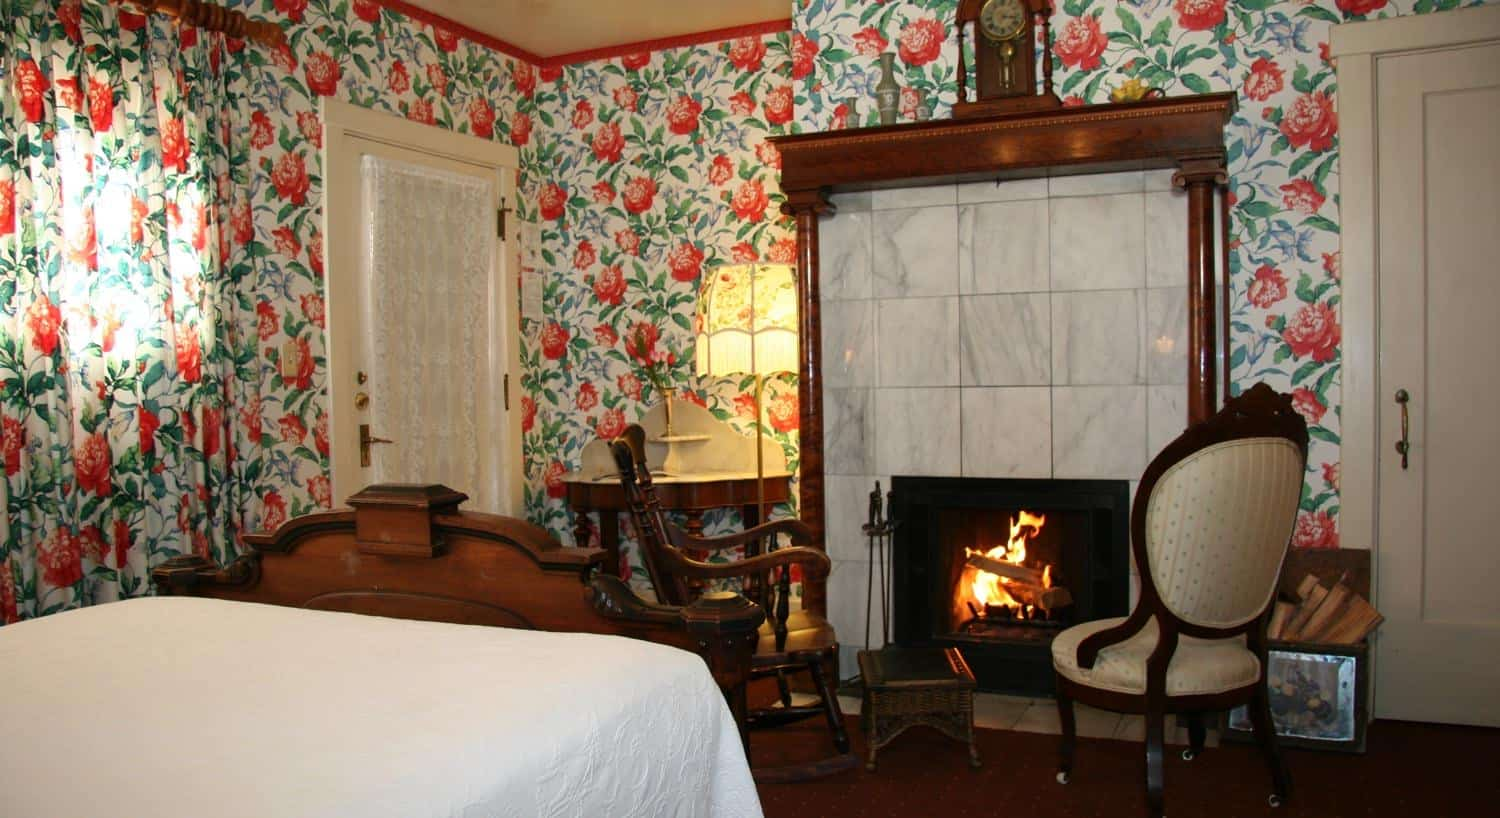 Carriage guest room with floral papered walls, two chairs in front of a fireplace, and floral curtains